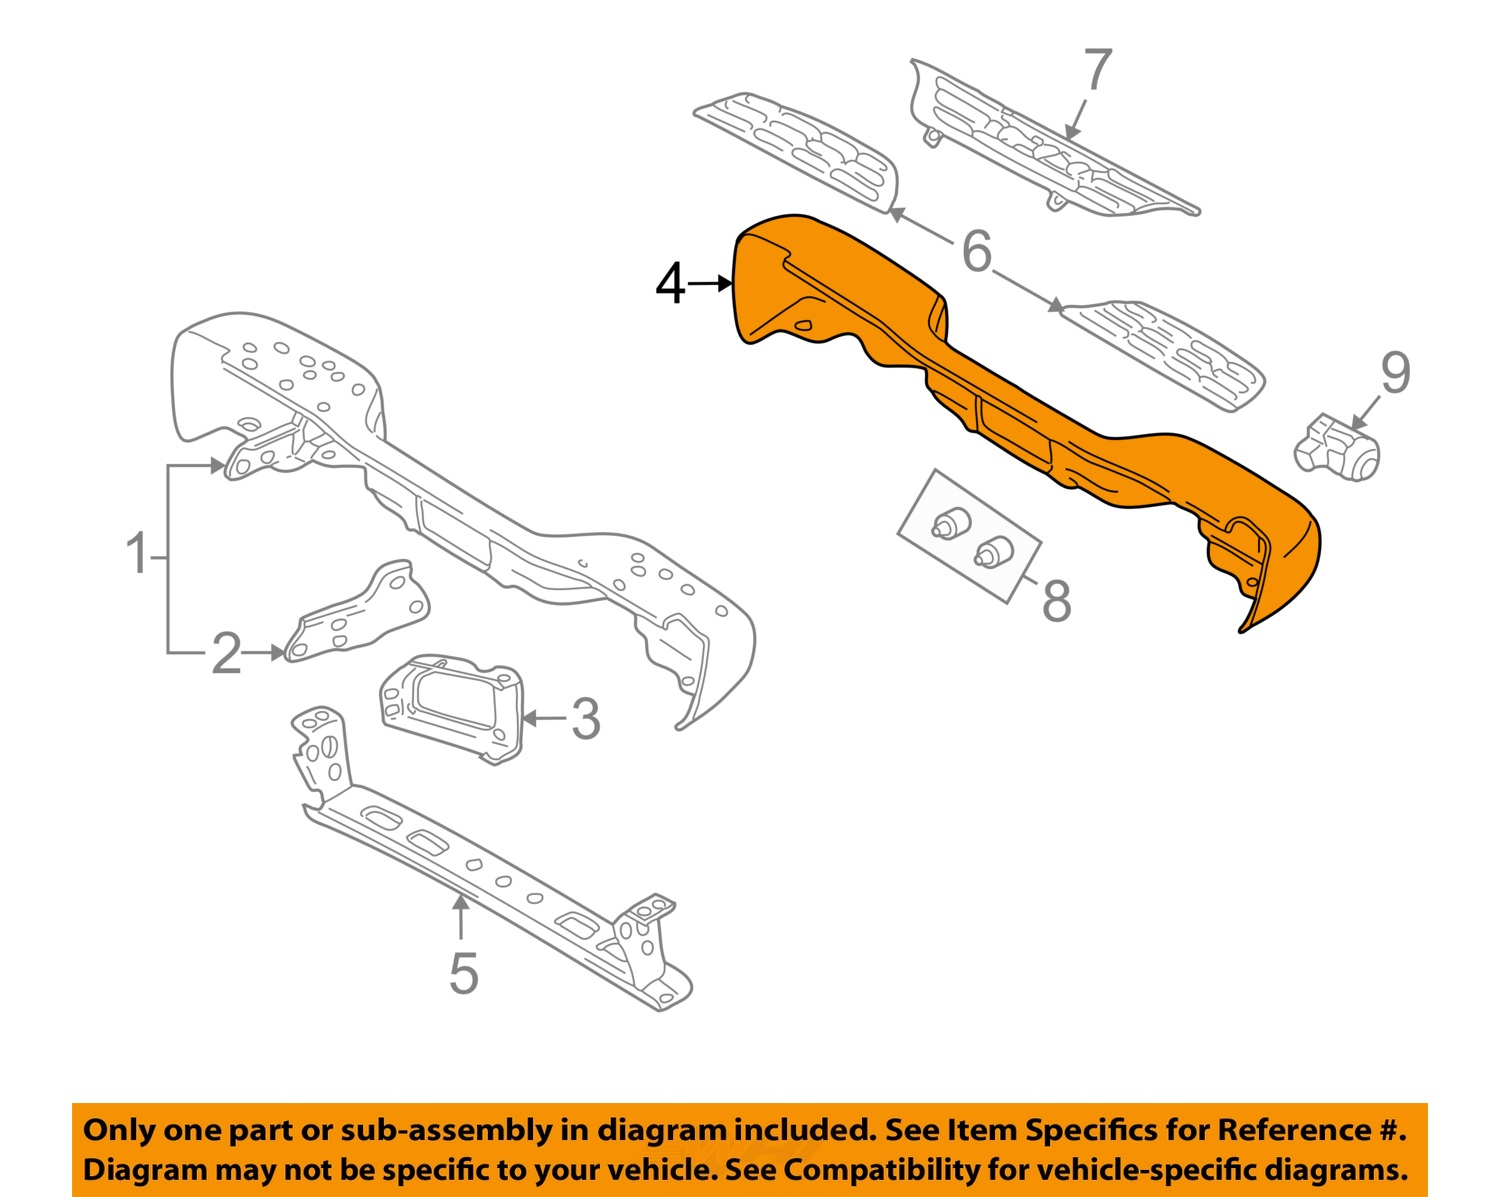 2002 chevy avalanche parts diagram emergency light wiring maintained rear step bumper plastic cover new gm